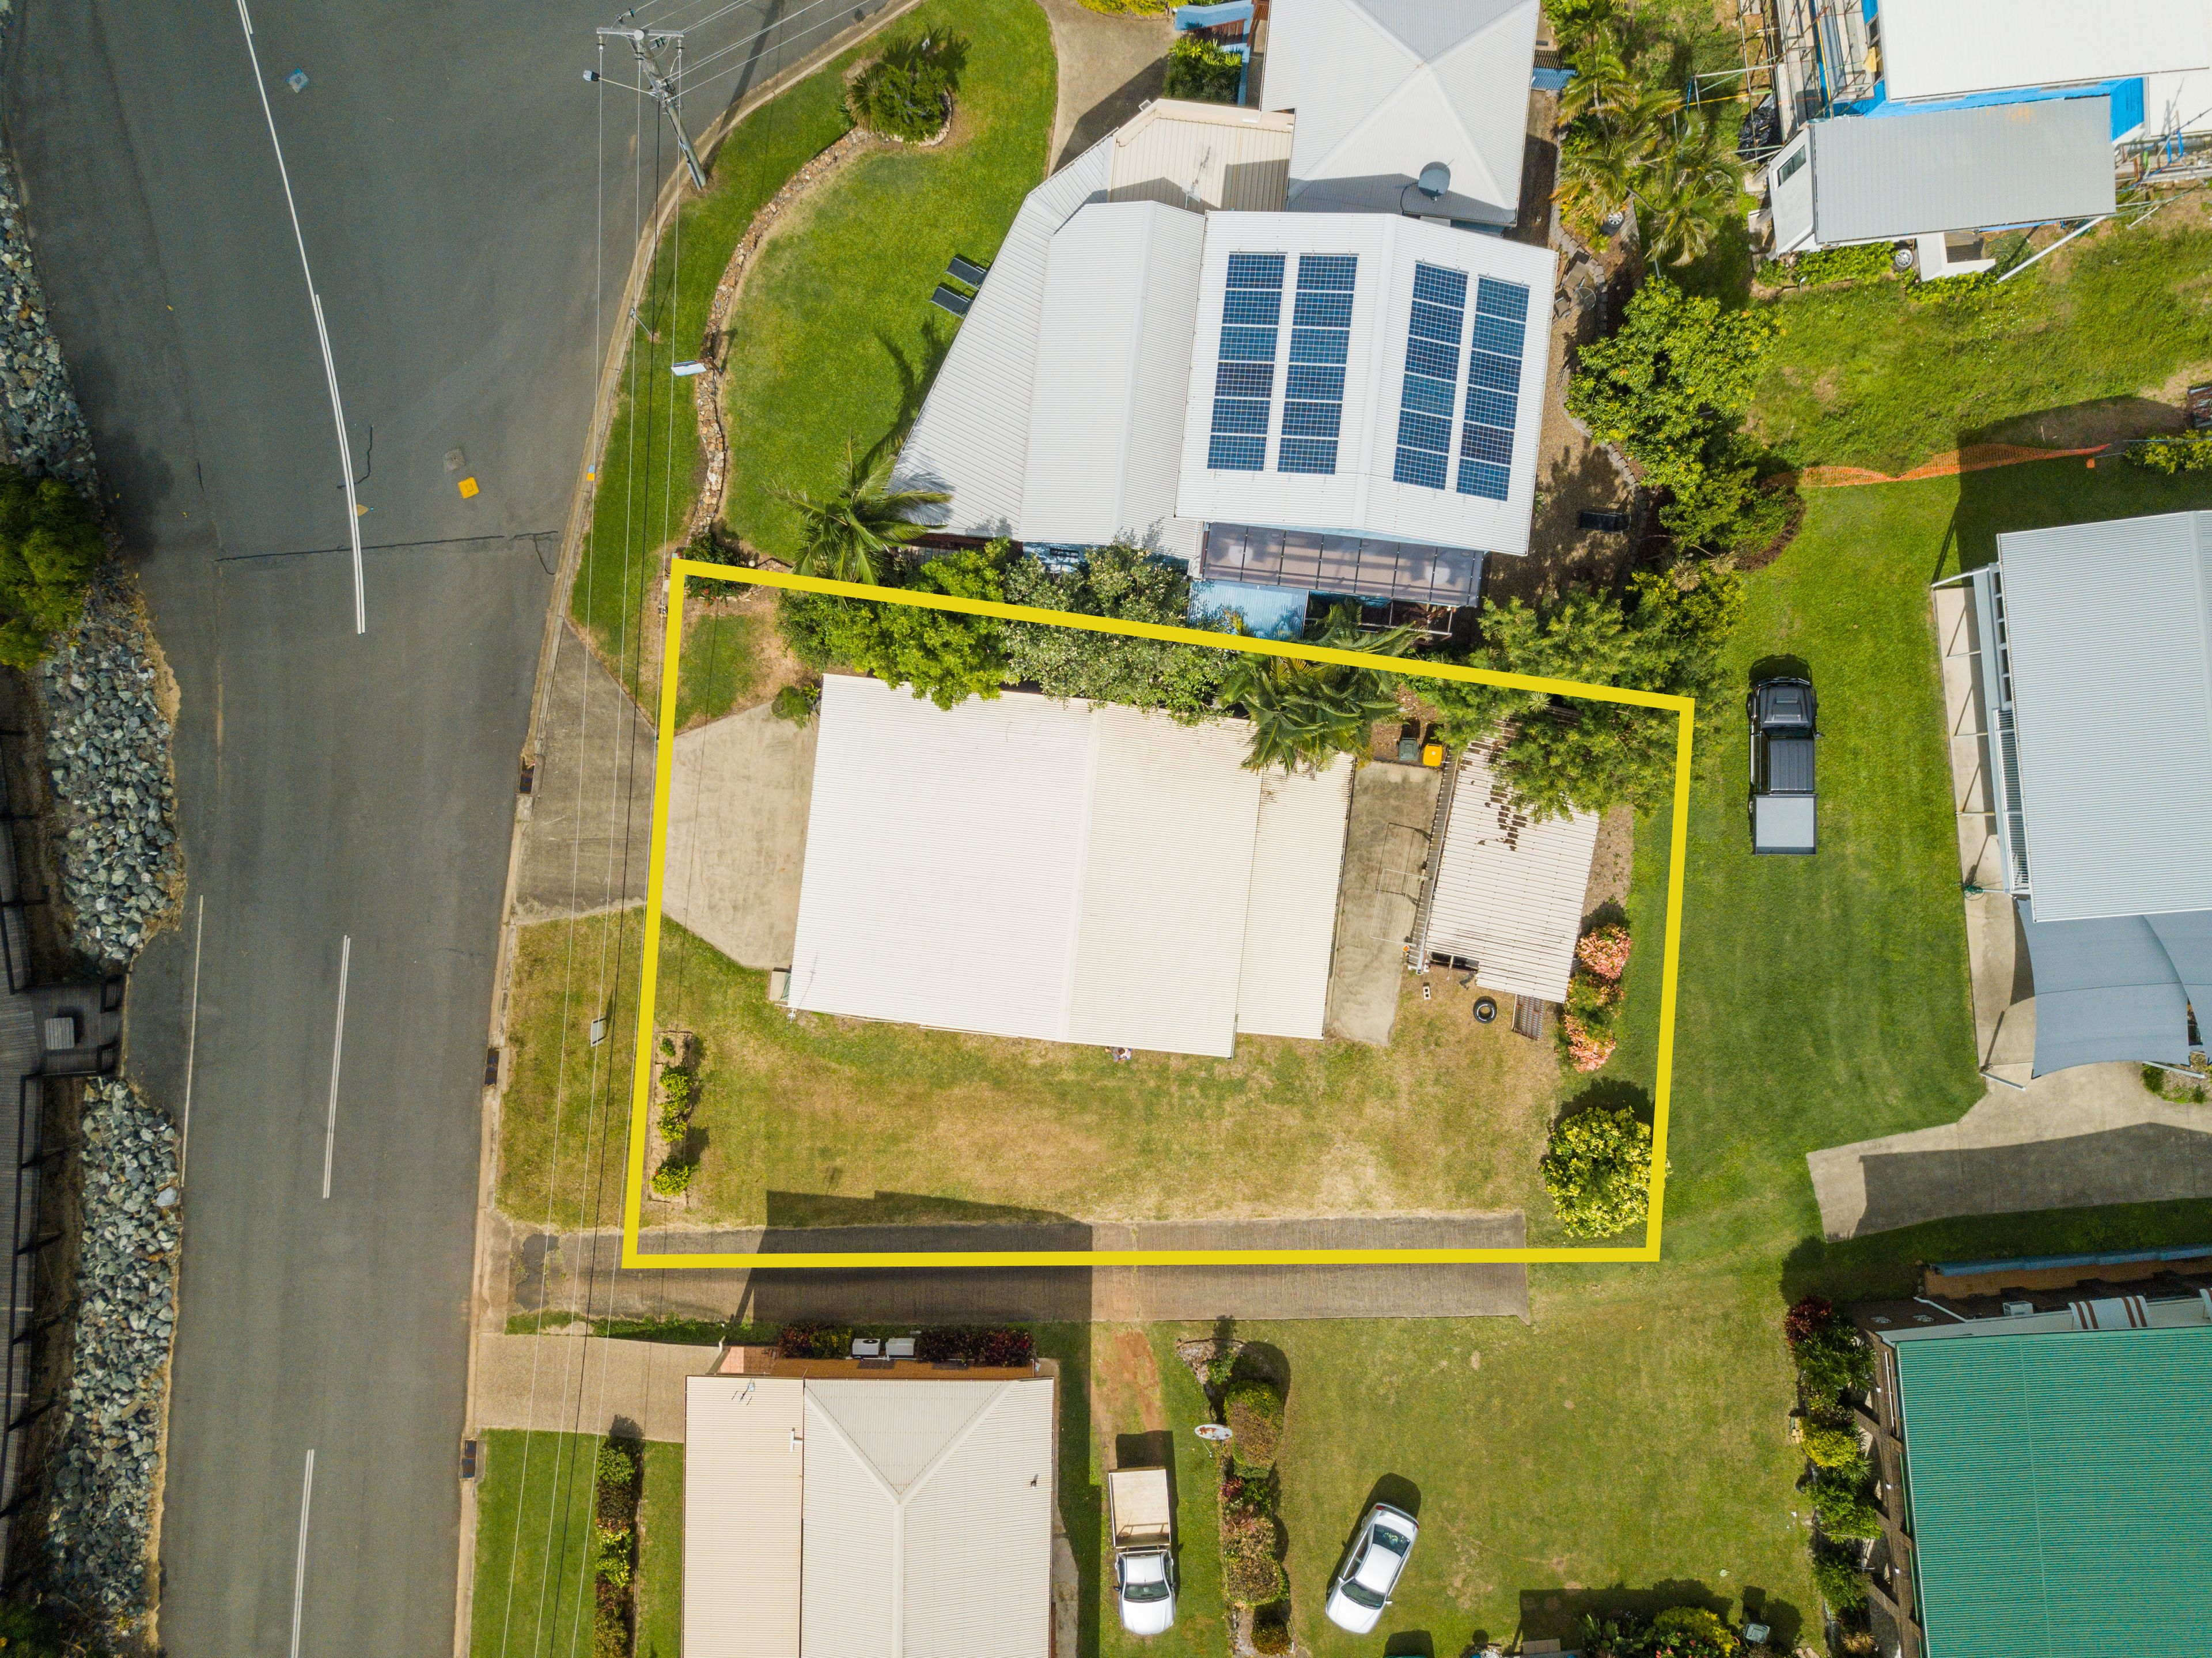 Broadwater Avenue Airlie Beach Qld 4802 - Sold House